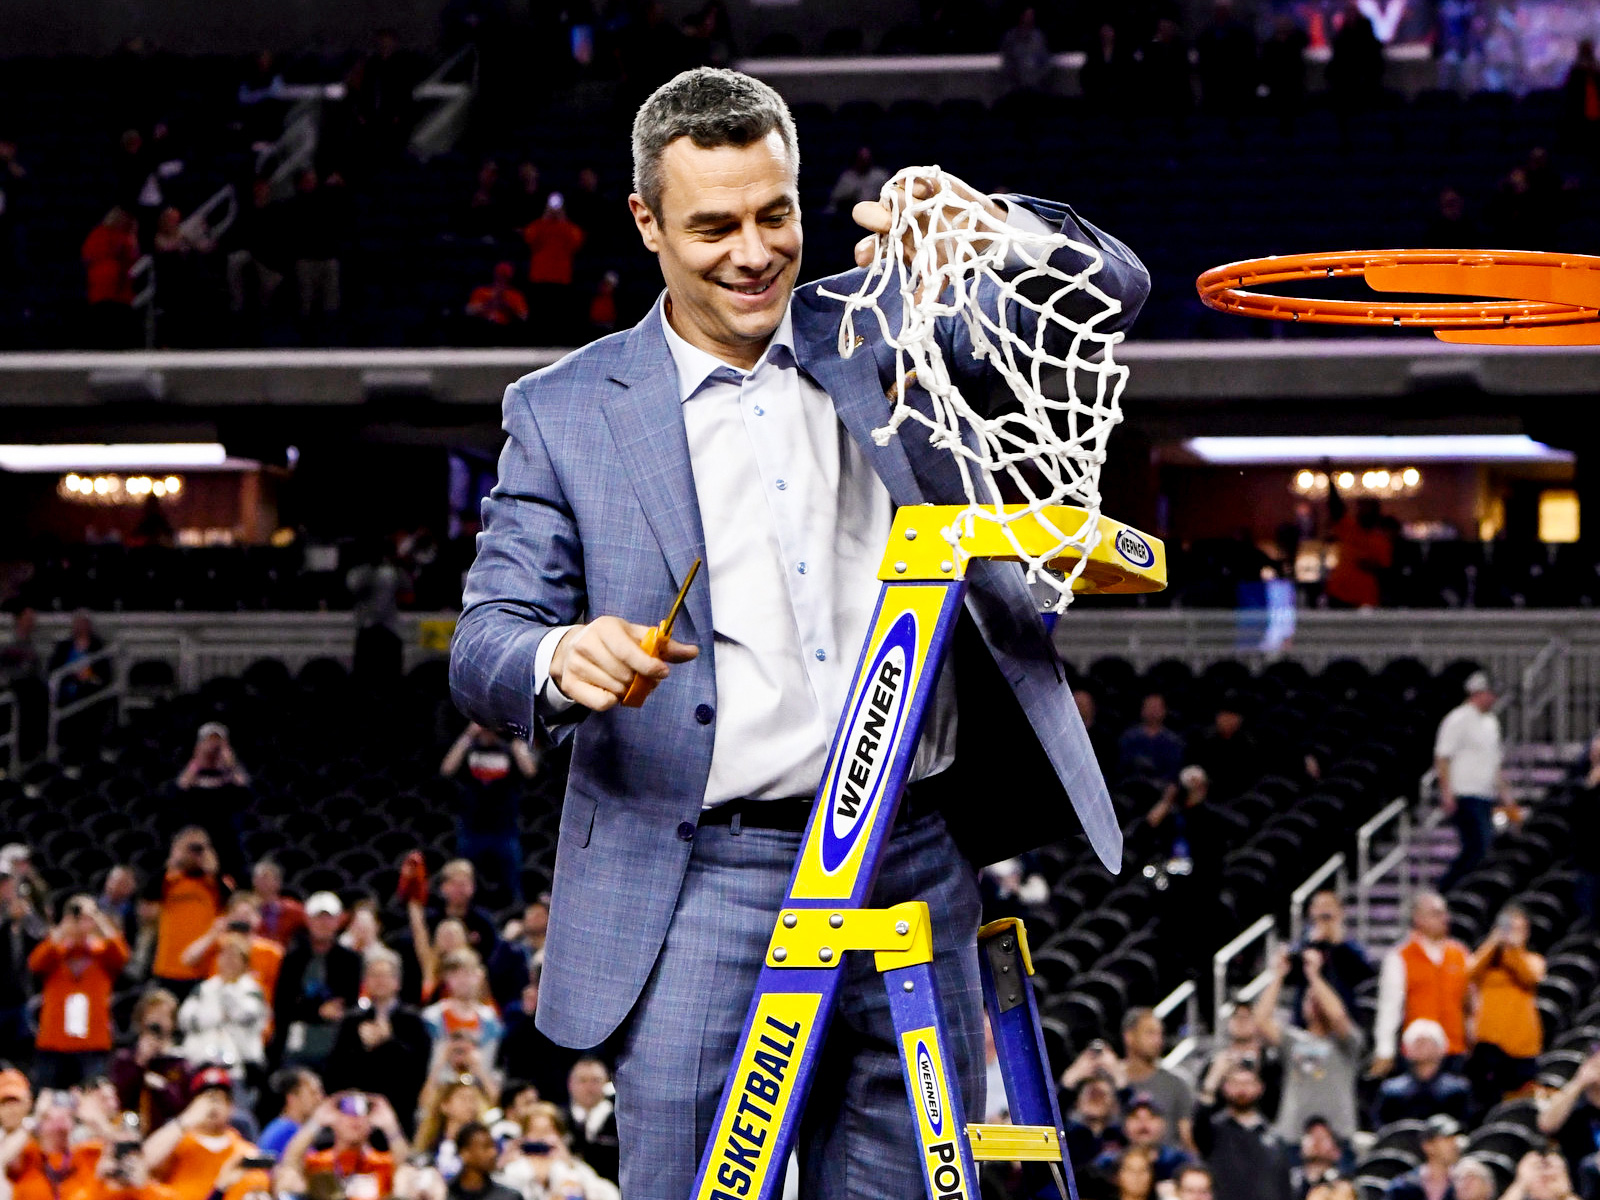 Virginia's Tony Bennett cuts down net